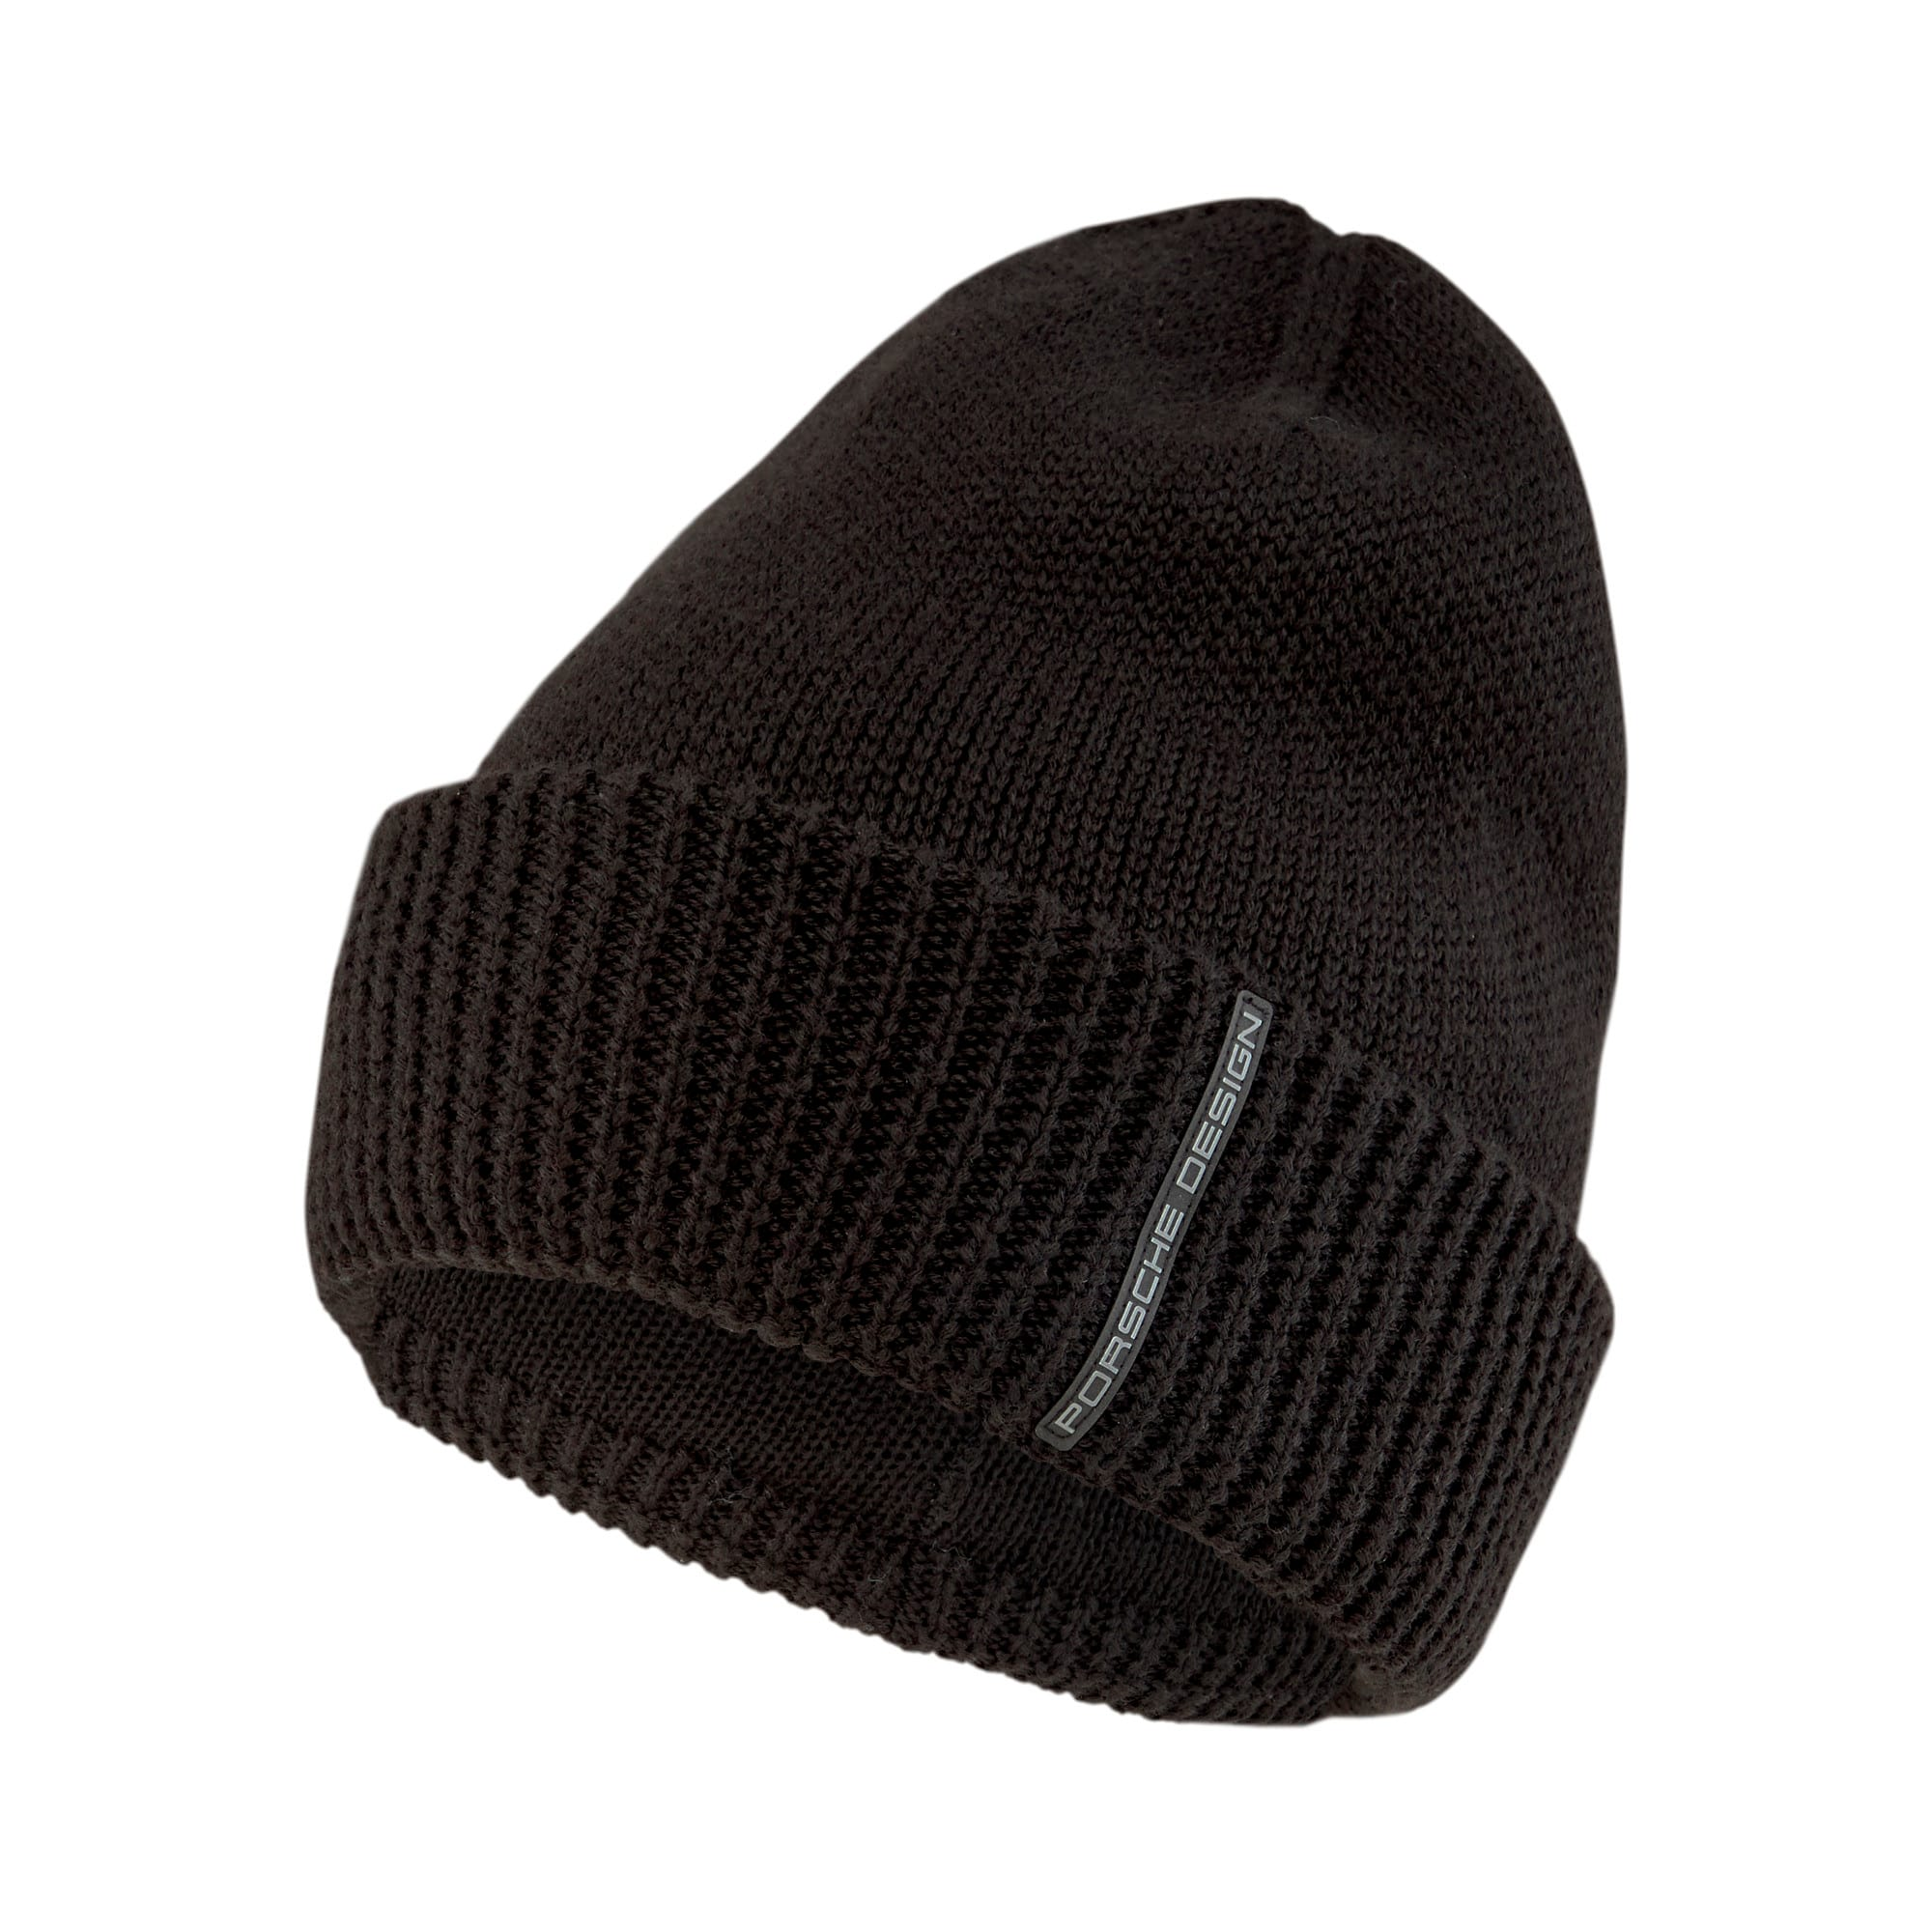 Thumbnail 1 of Porsche Design Knit Beanie, Puma Black, medium